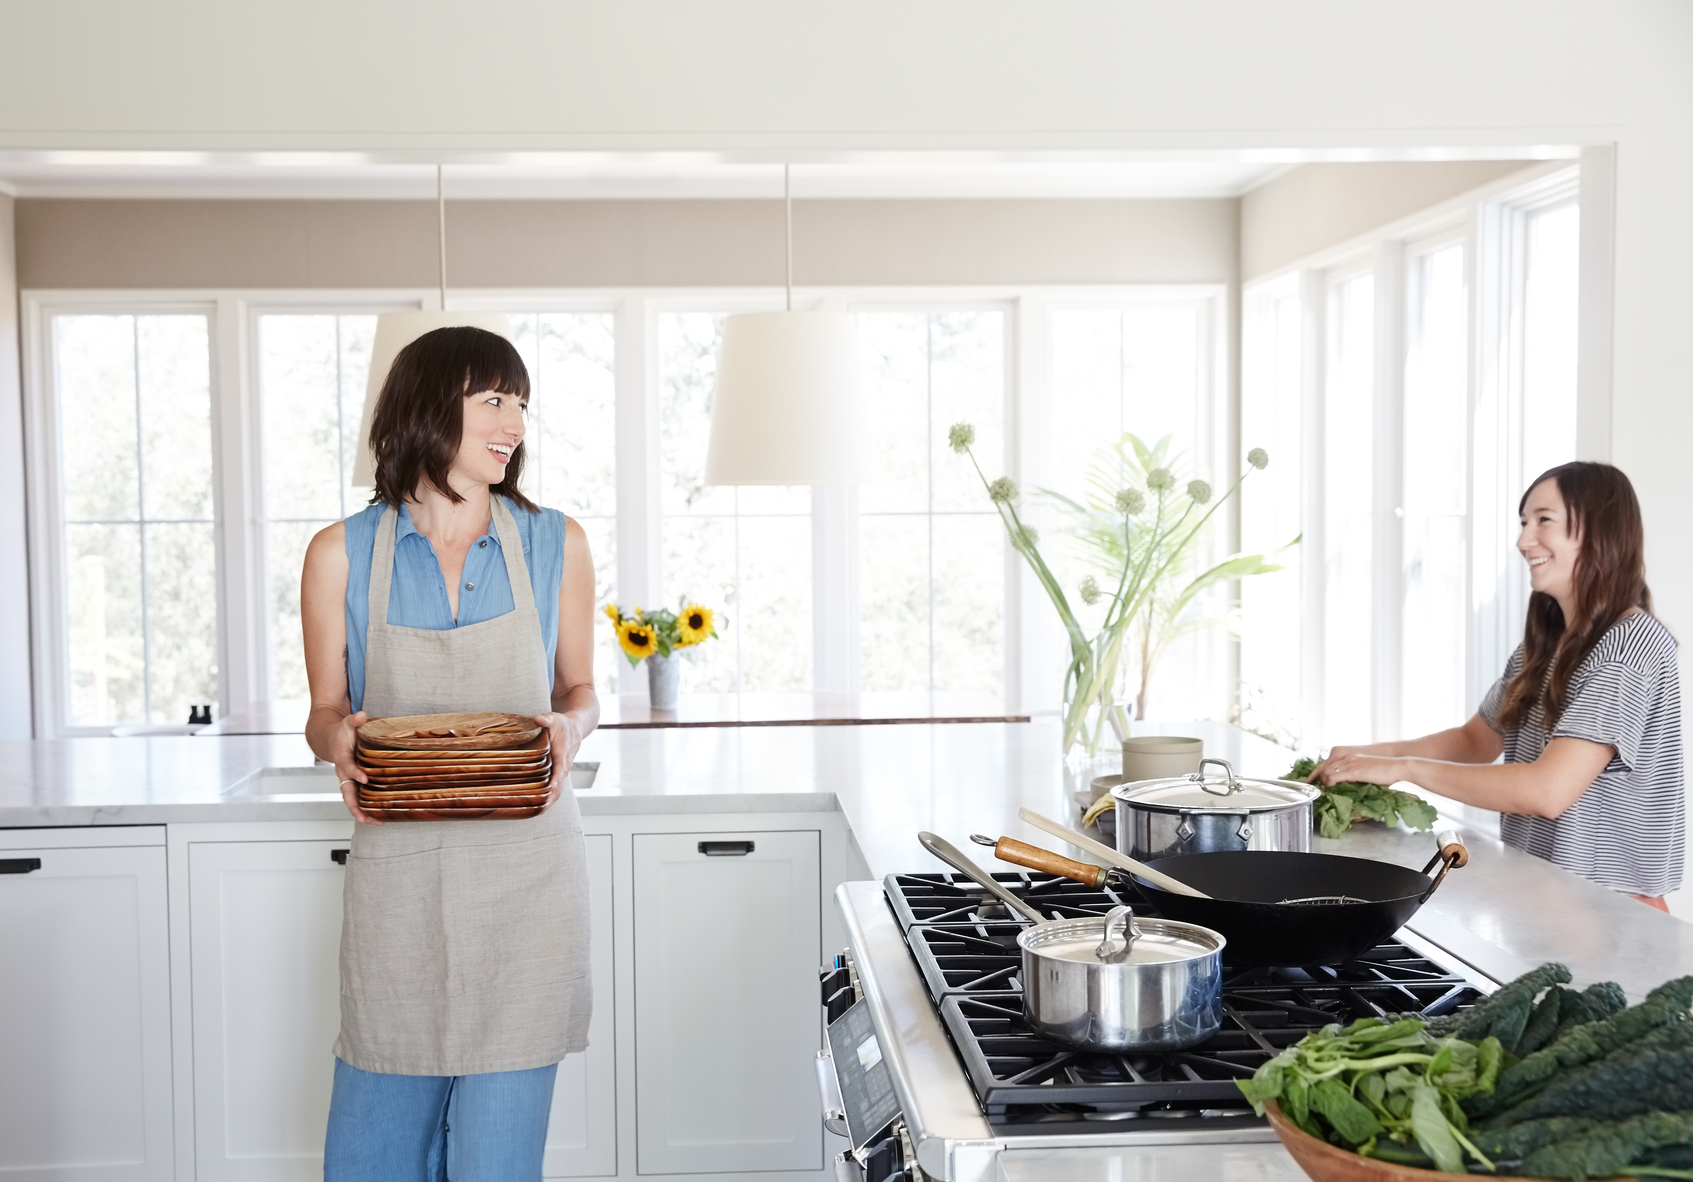 Uncategorized Kitchen Appliances On Credit 25 best ideas about tenant credit check on pinterest the benefits of counseling for homebuyers nerdwallet kitchen appliances